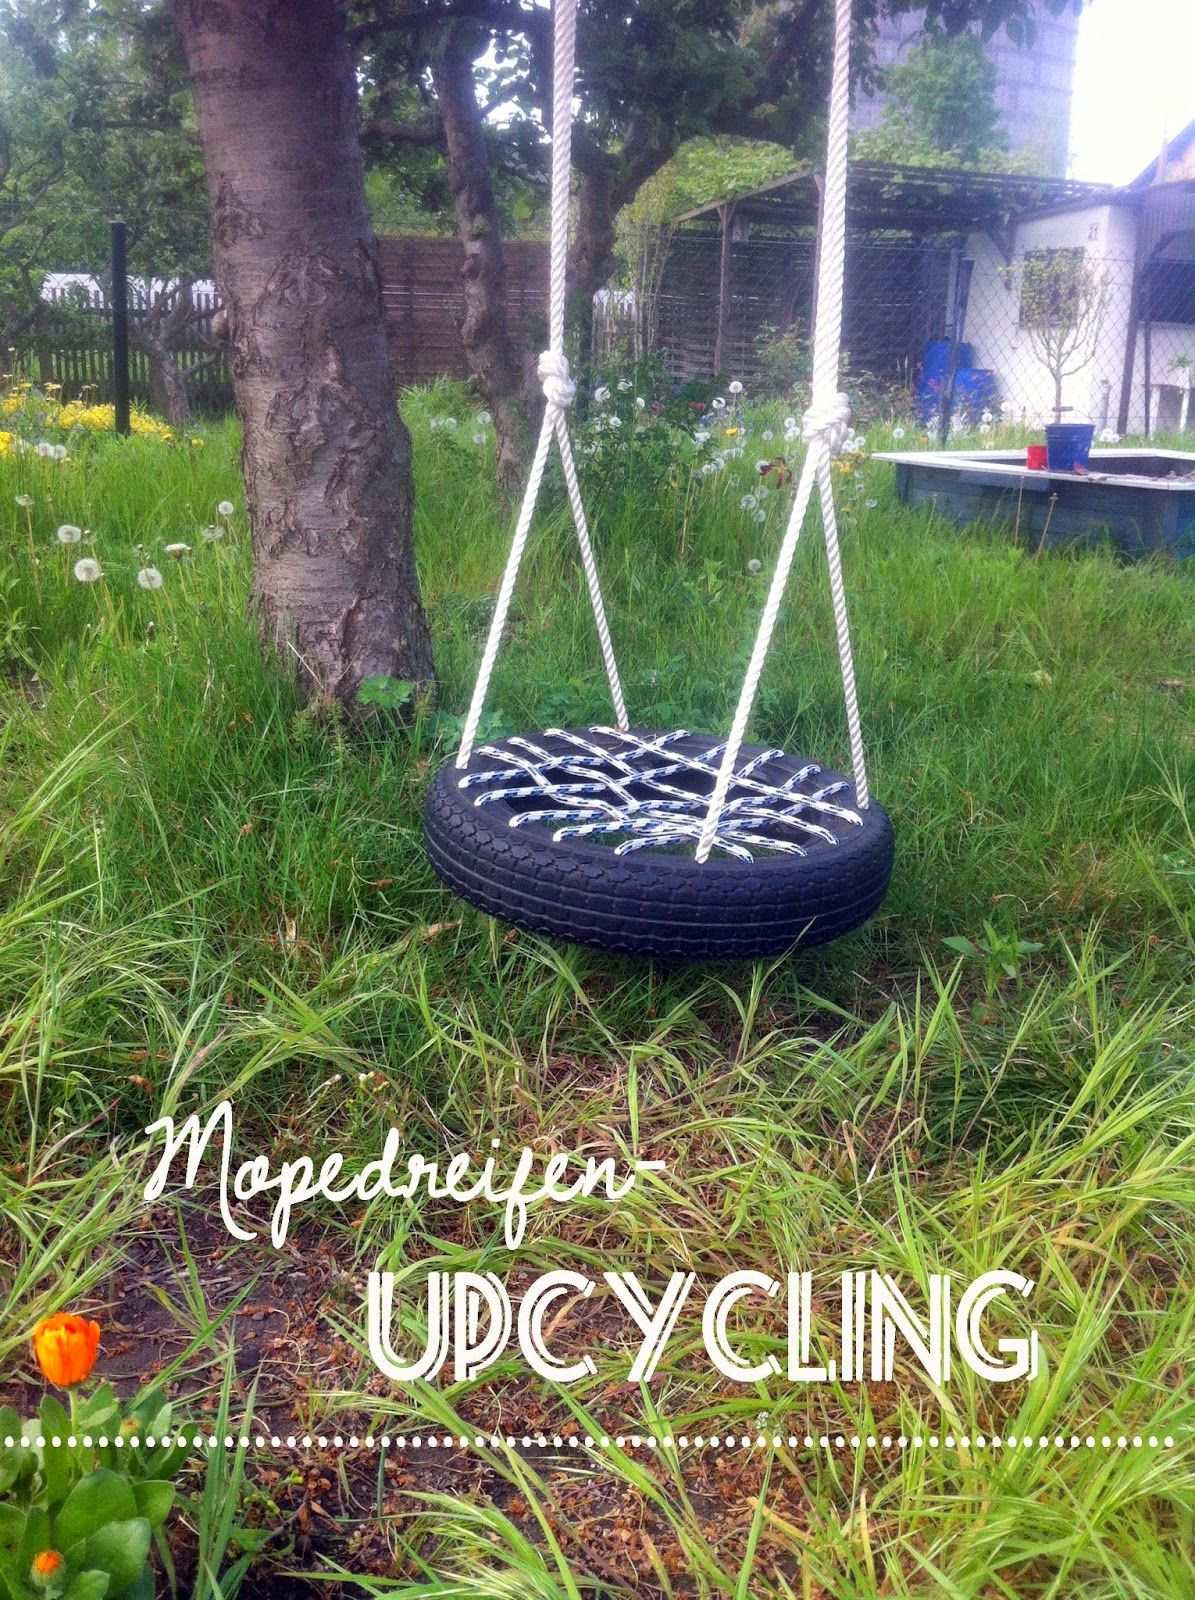 upcycling kinderschaukel aus reifen swing made of car tyre upcyclingapril2014 pinterest. Black Bedroom Furniture Sets. Home Design Ideas